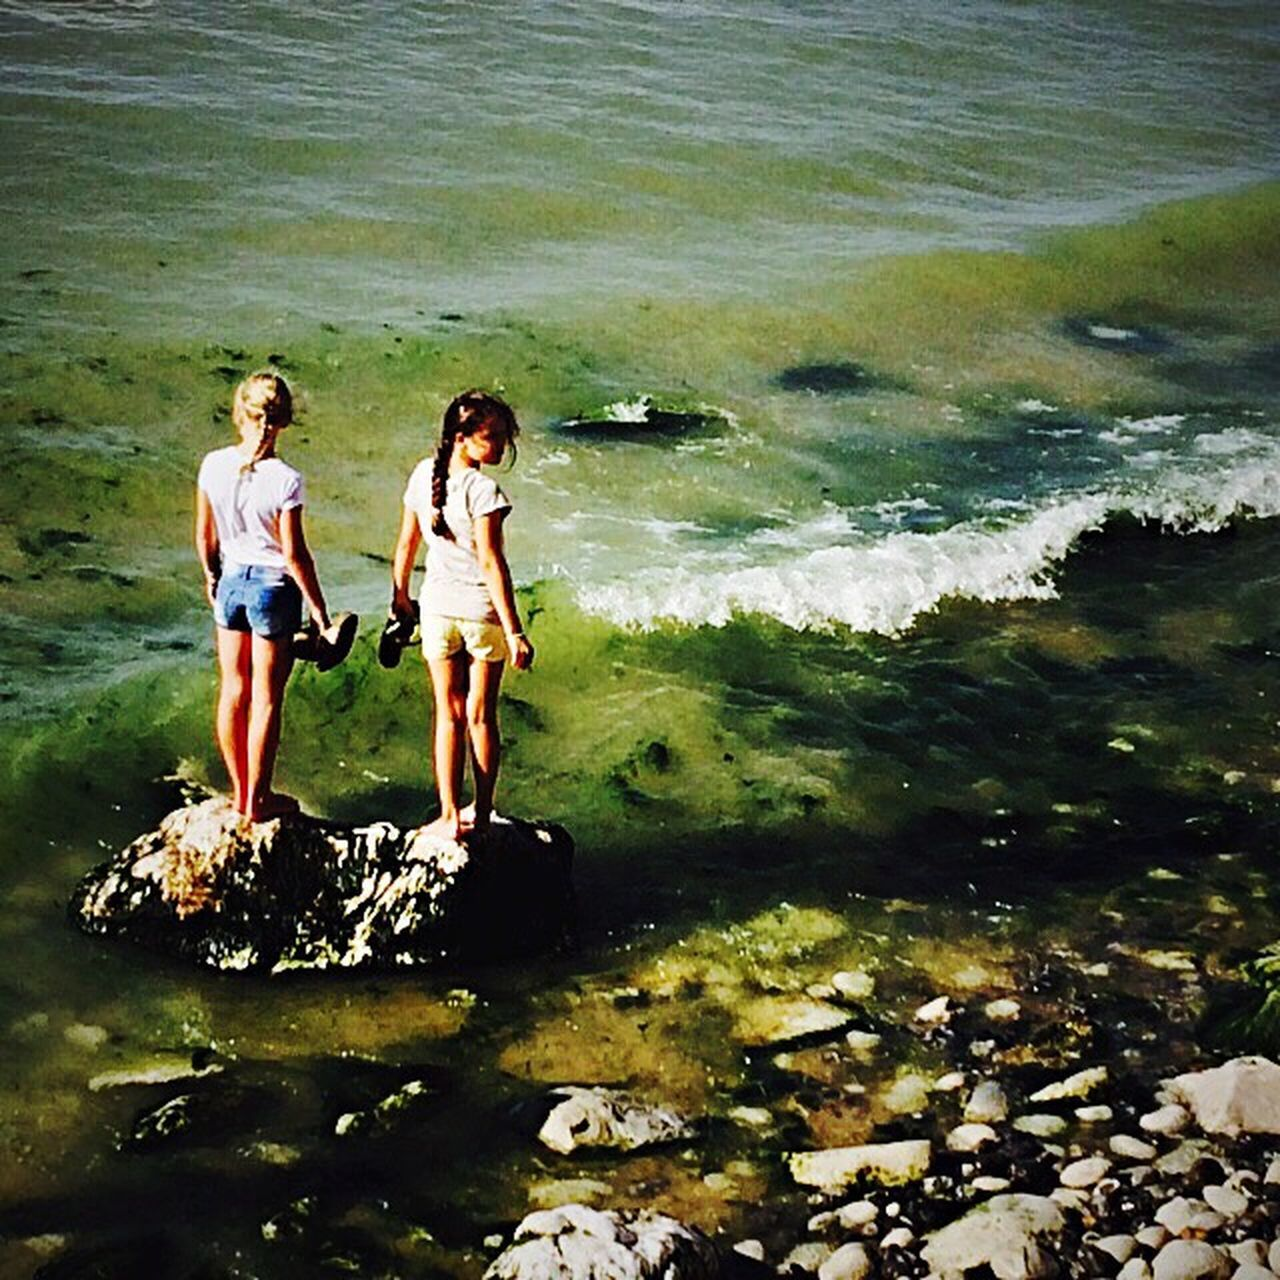 sea, water, nature, rock - object, vacations, adventure, full length, real people, day, togetherness, outdoors, leisure activity, beauty in nature, friendship, lifestyles, beach, two people, standing, ankle deep in water, wave, young adult